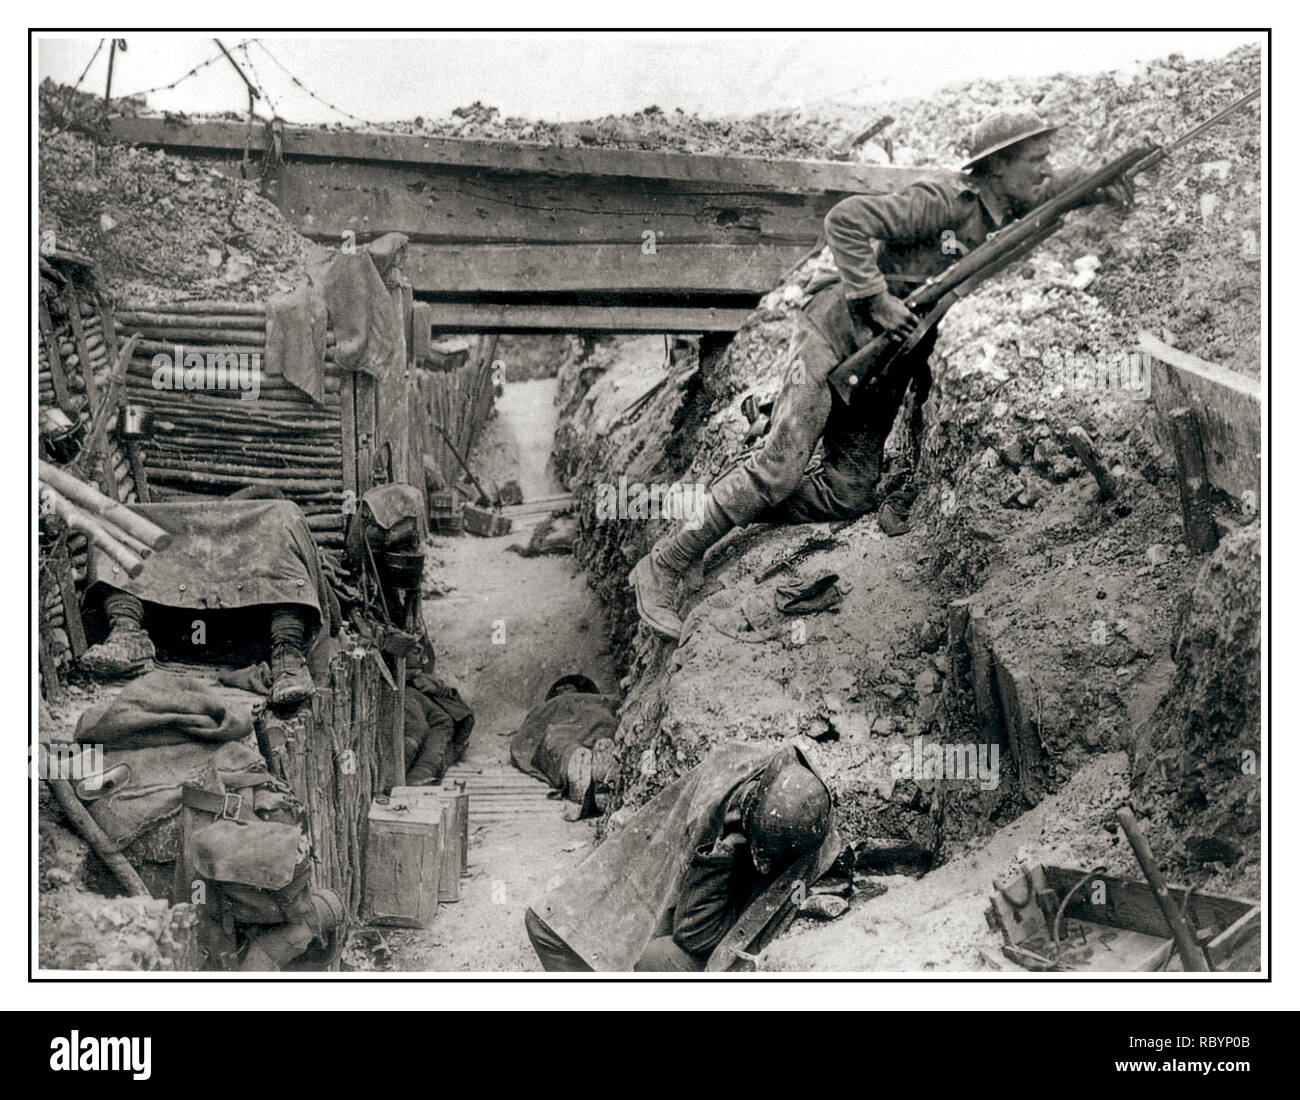 WW1 Battle of The Somme Trenches A German trench now occupied by British Soldiers resting during a lull in fighting near the Albert-Bapaume road at Ovillers-la-Boisselle, July 1916 during the Battle of the Somme. The men are from A Company, 11th Battalion, The Cheshire Regiment. Stock Photo